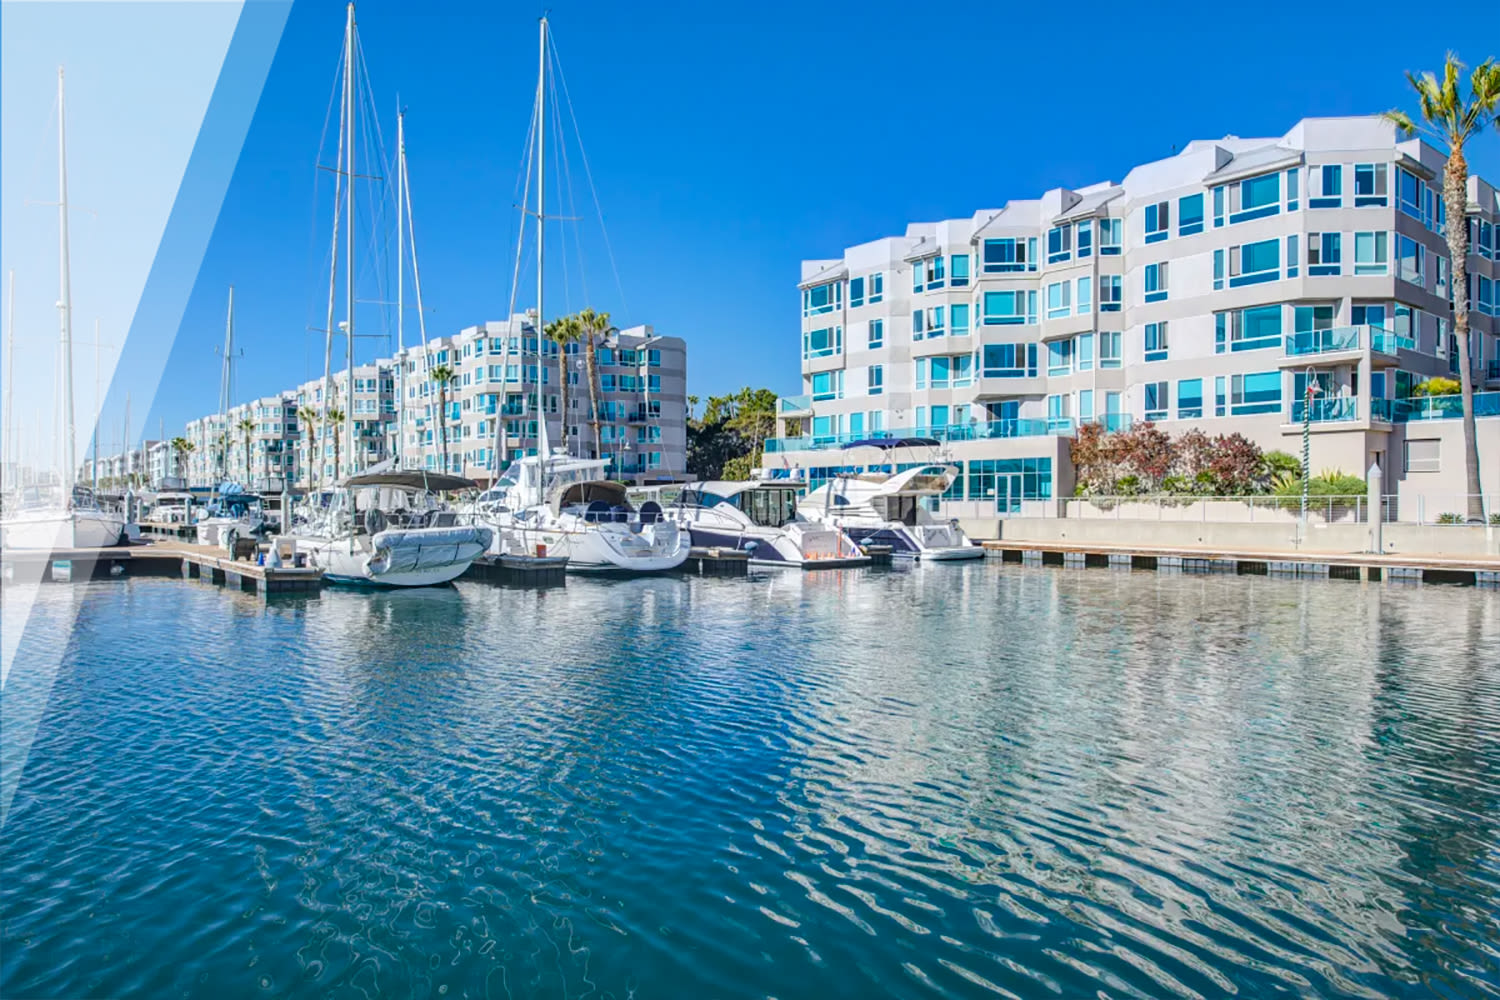 View of the marina and community from the water at our Esprit property at E&S Ring Management Corporation in Los Angeles, California